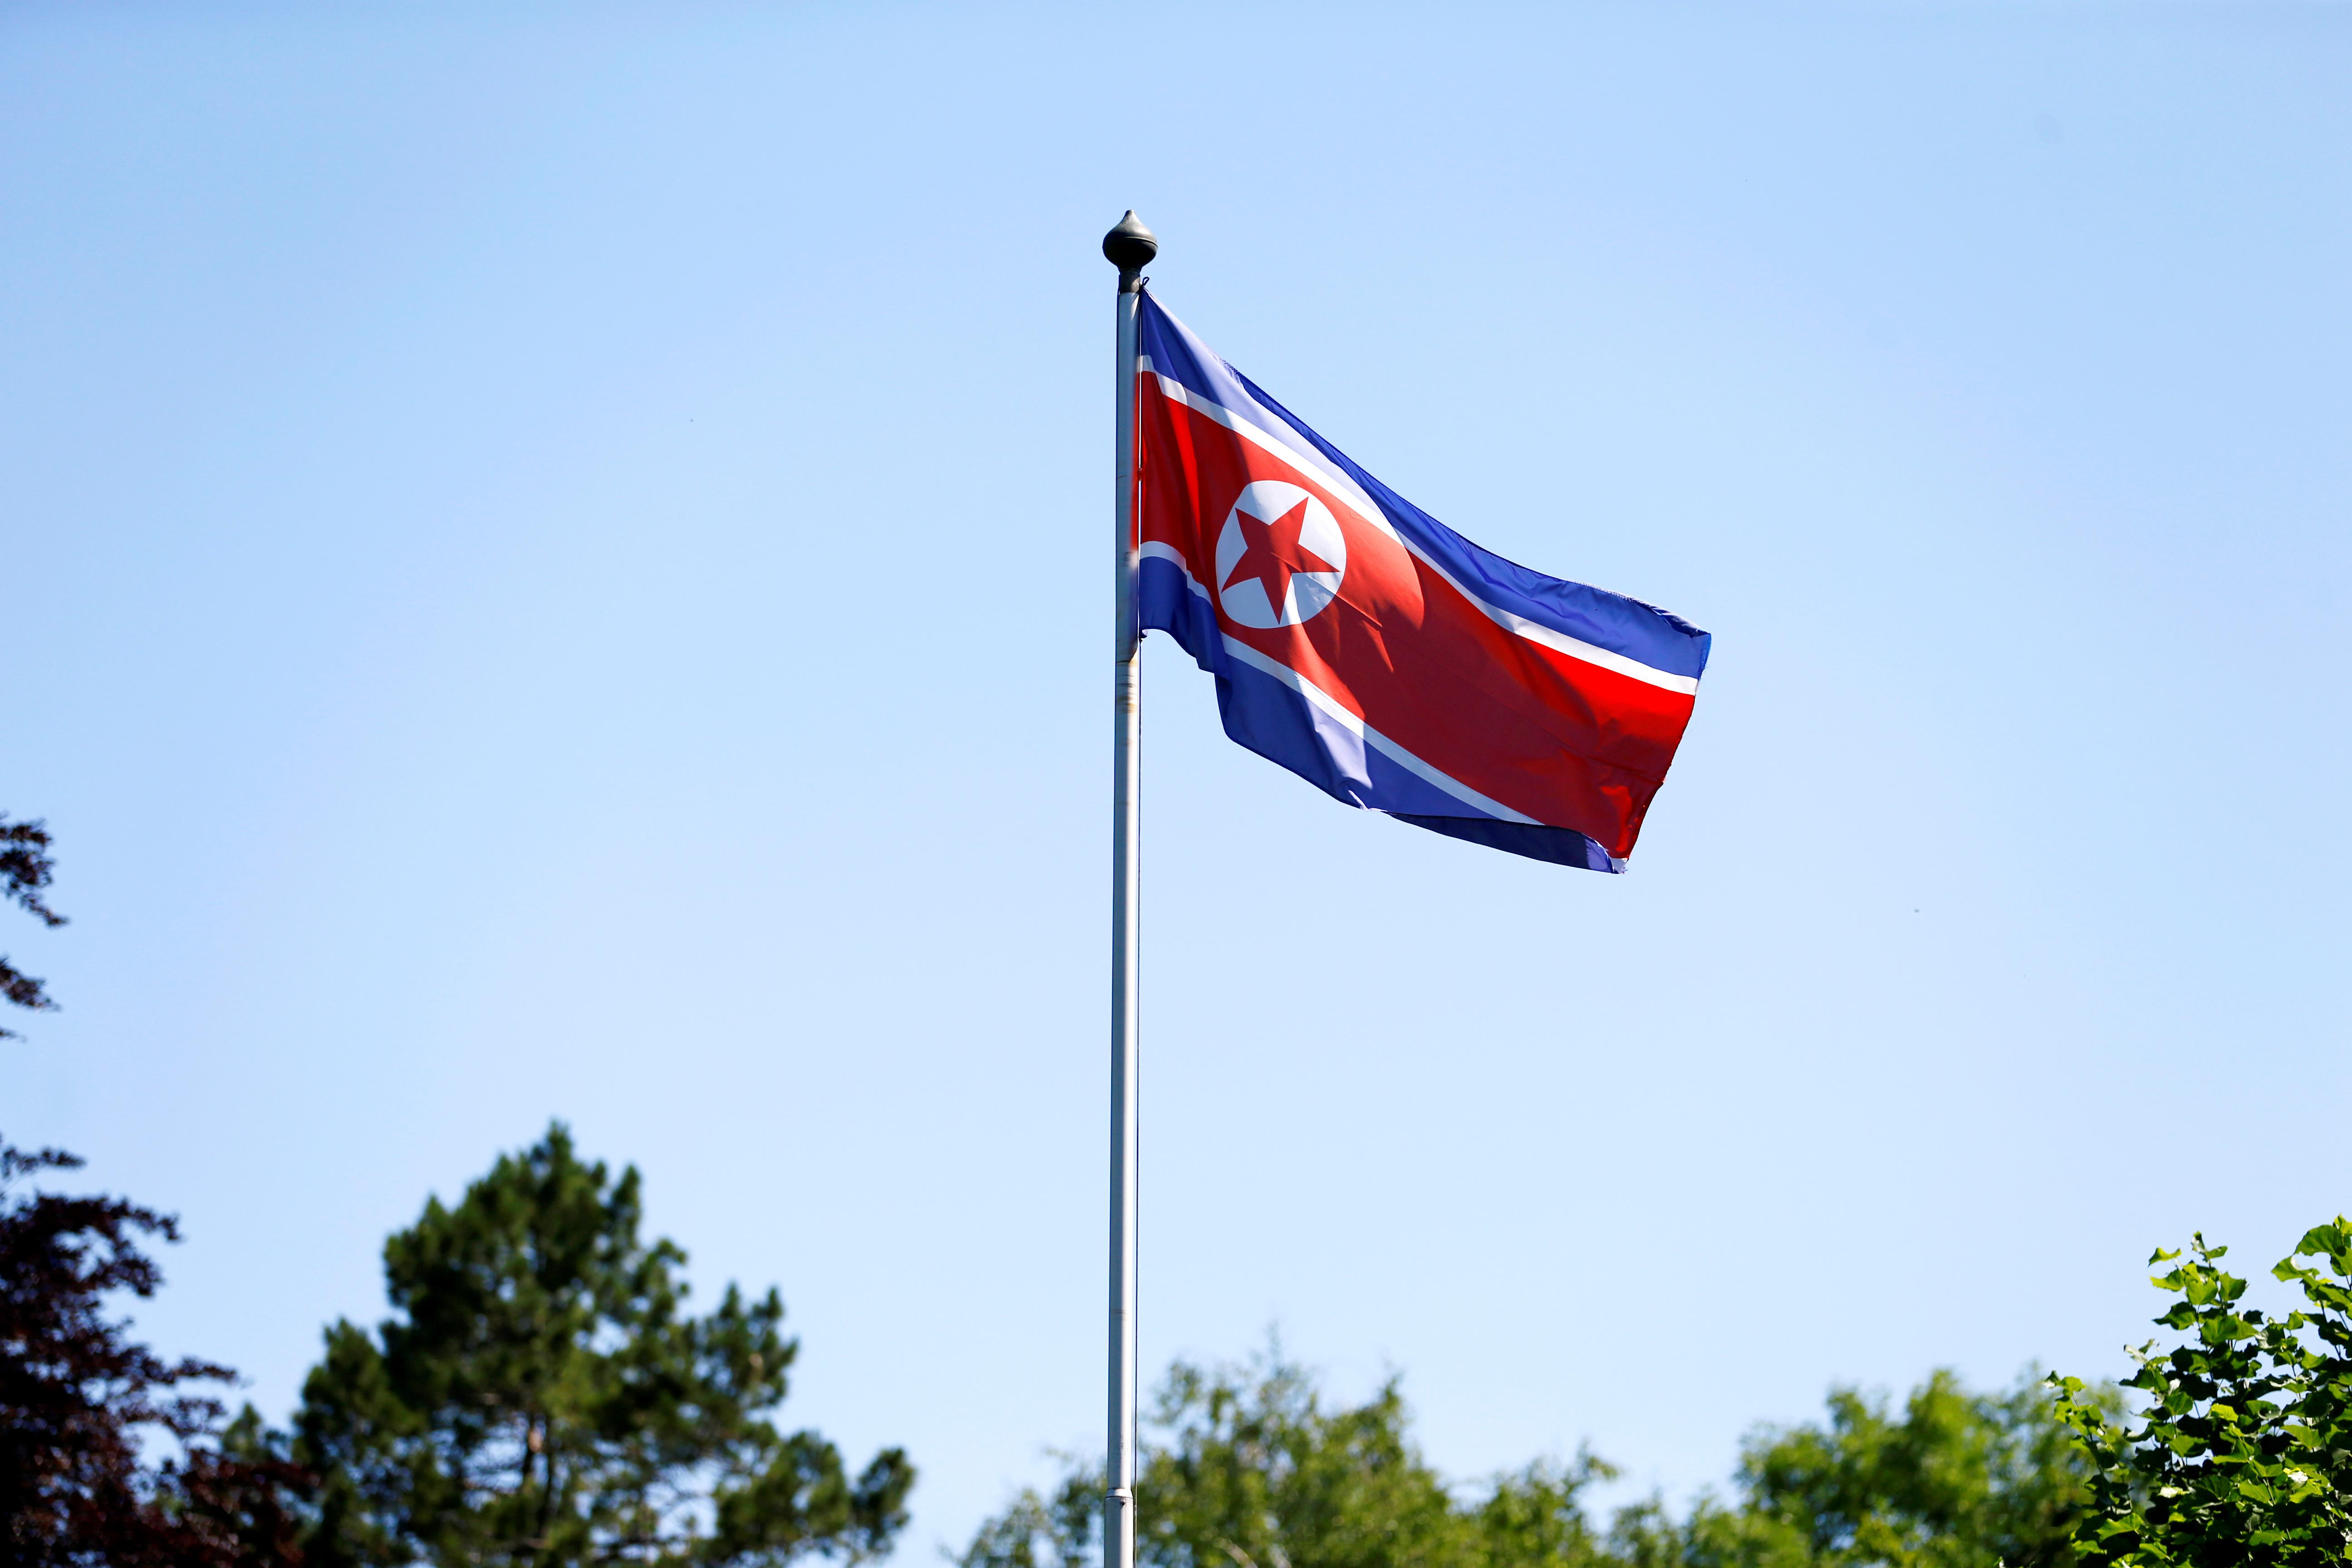 Nuclear talks in doubt as North Korea tests missiles, envoy cancels trip